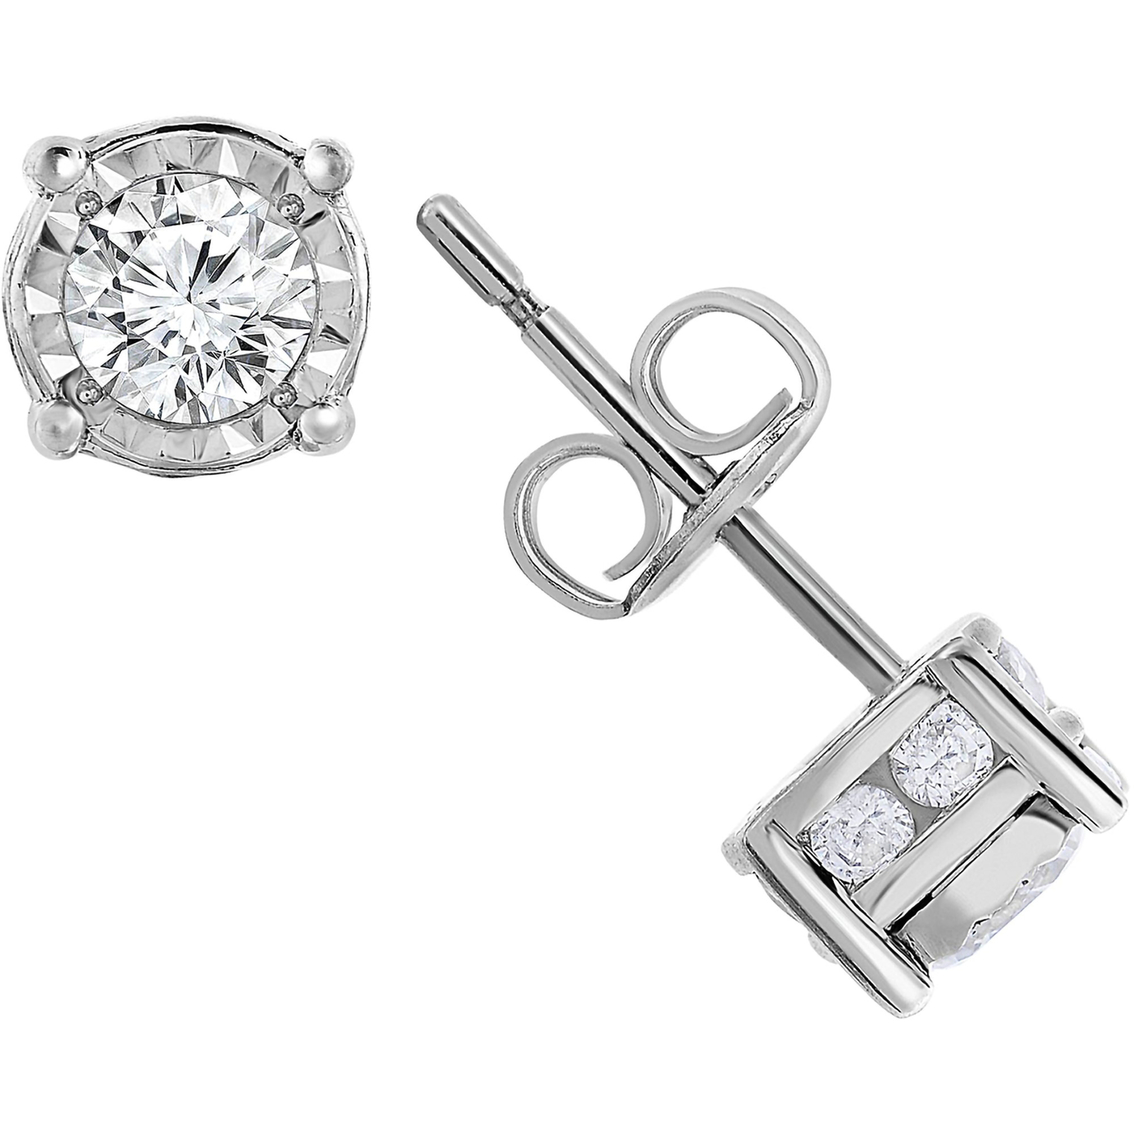 10k White Gold 1 Ctw Diamond Stud Earrings